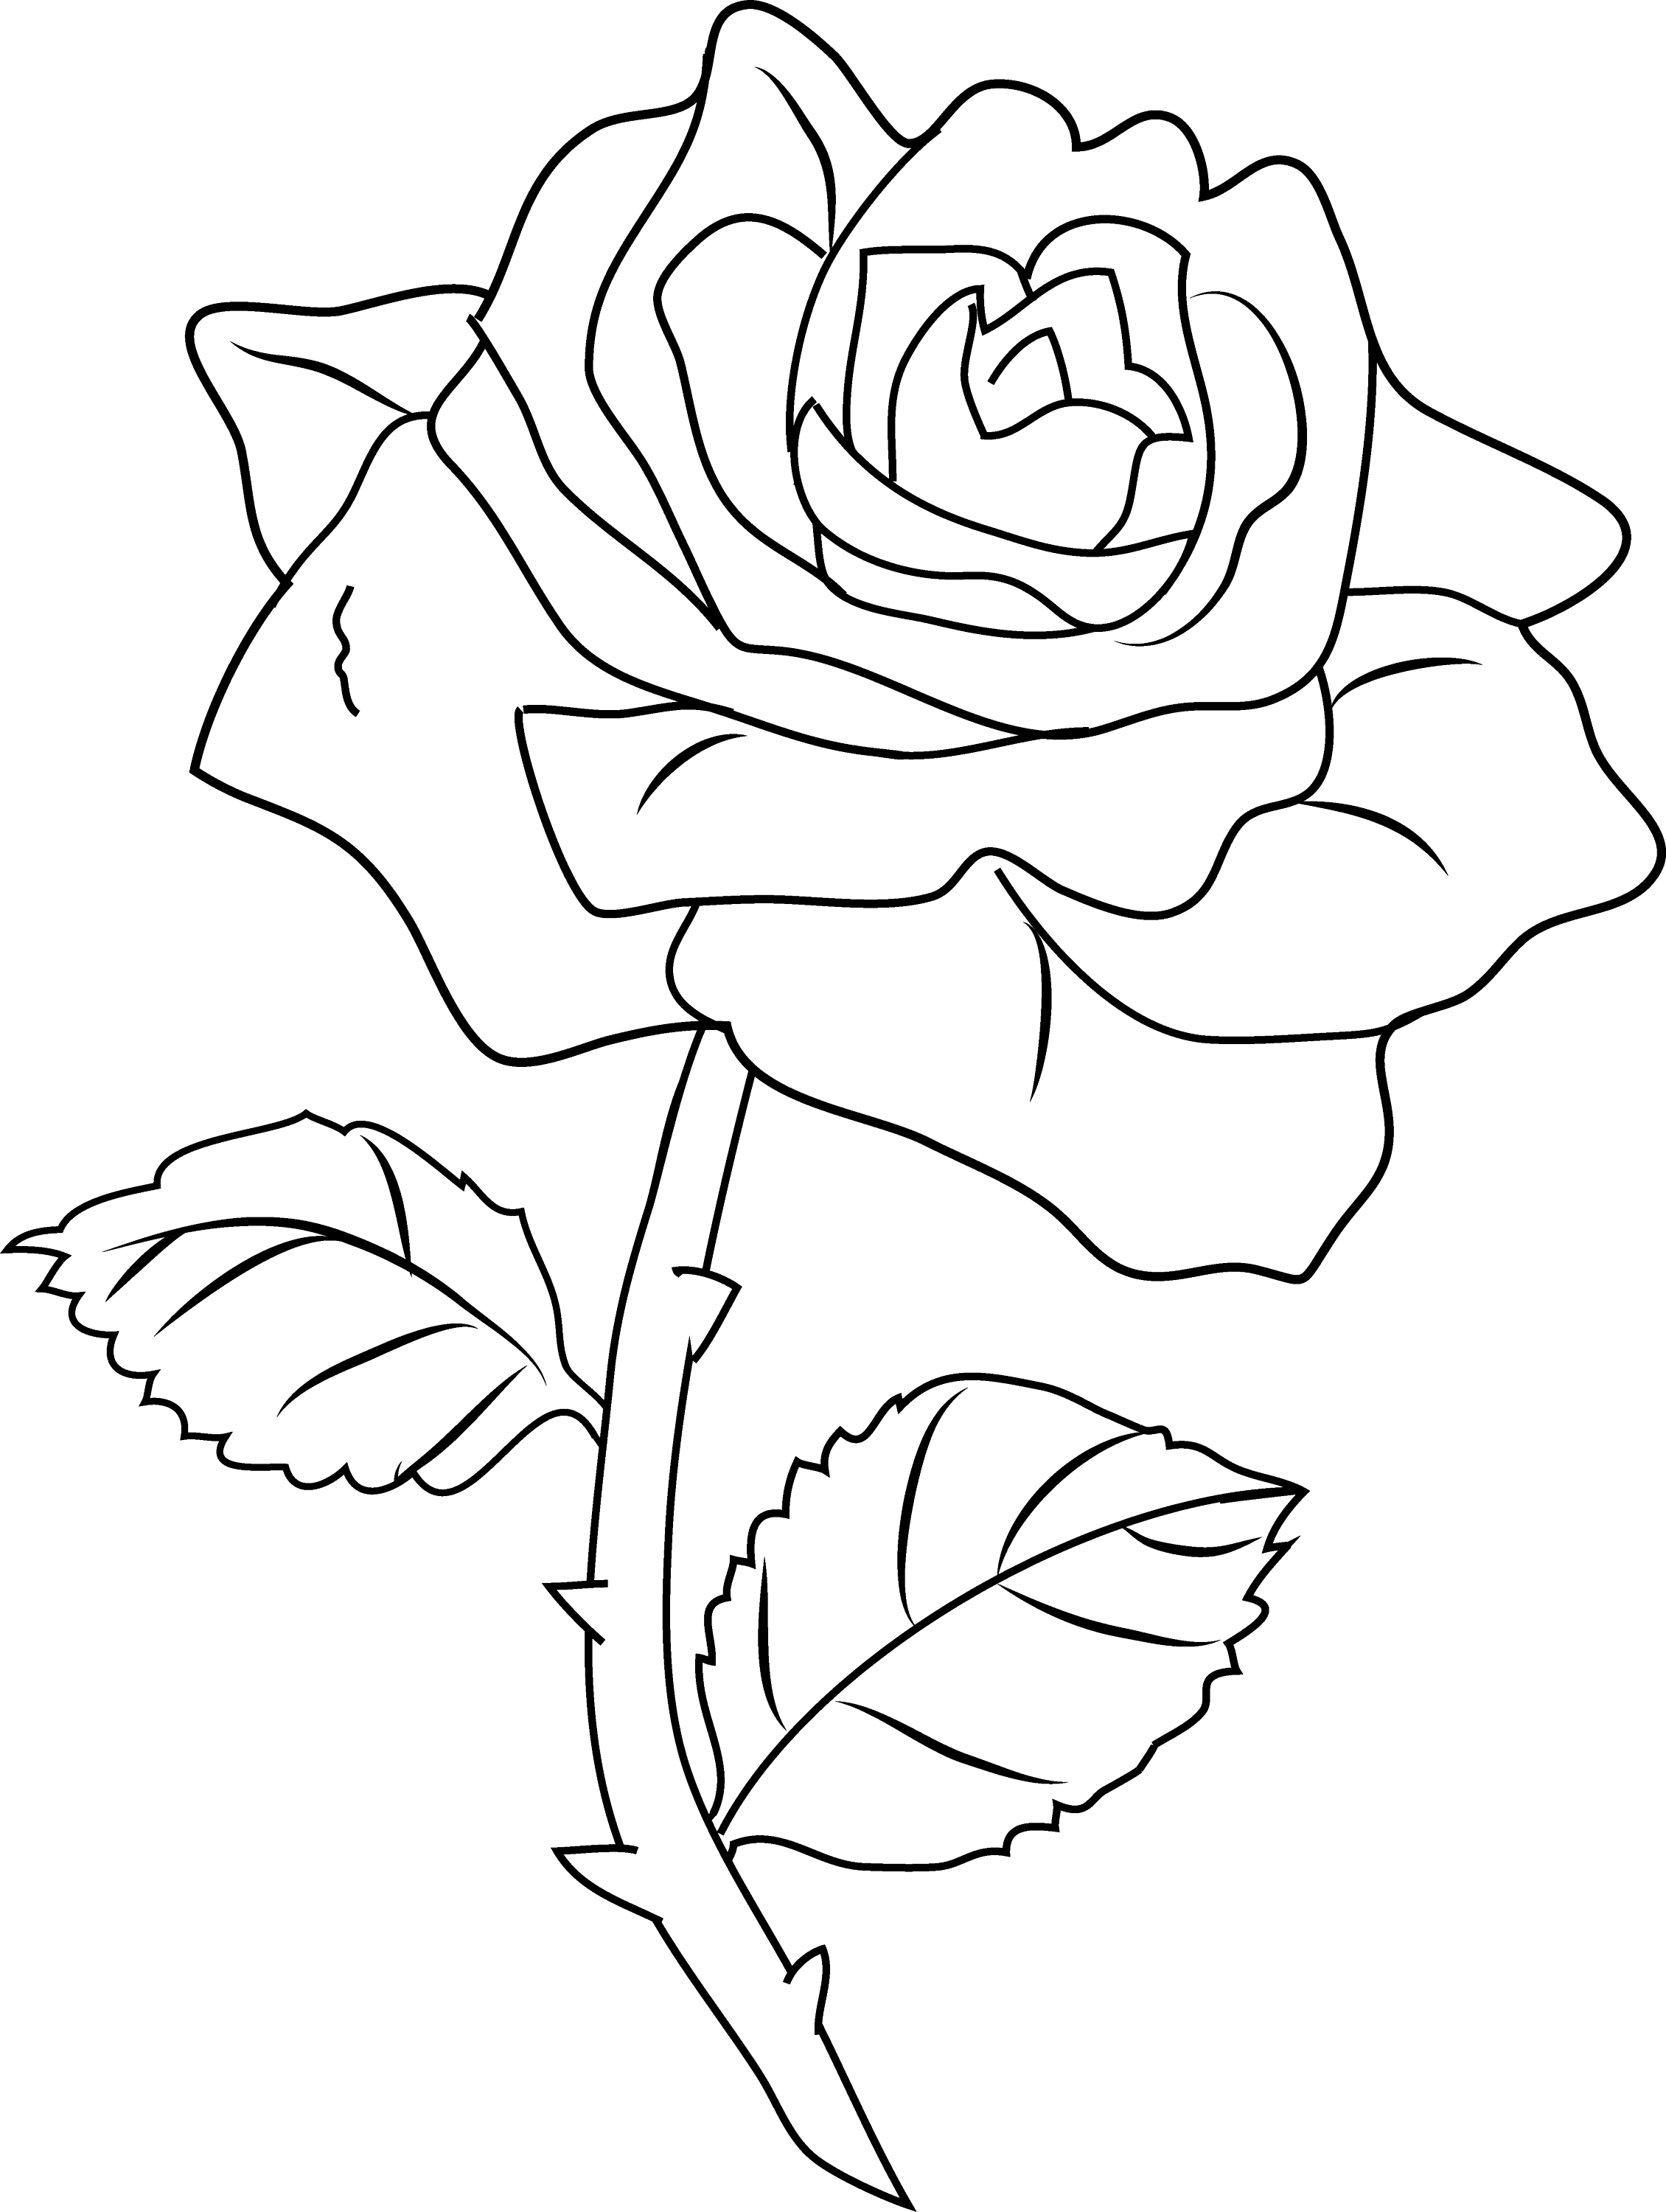 rose coloring book page roses coloring pages getcoloringpagescom page rose book coloring